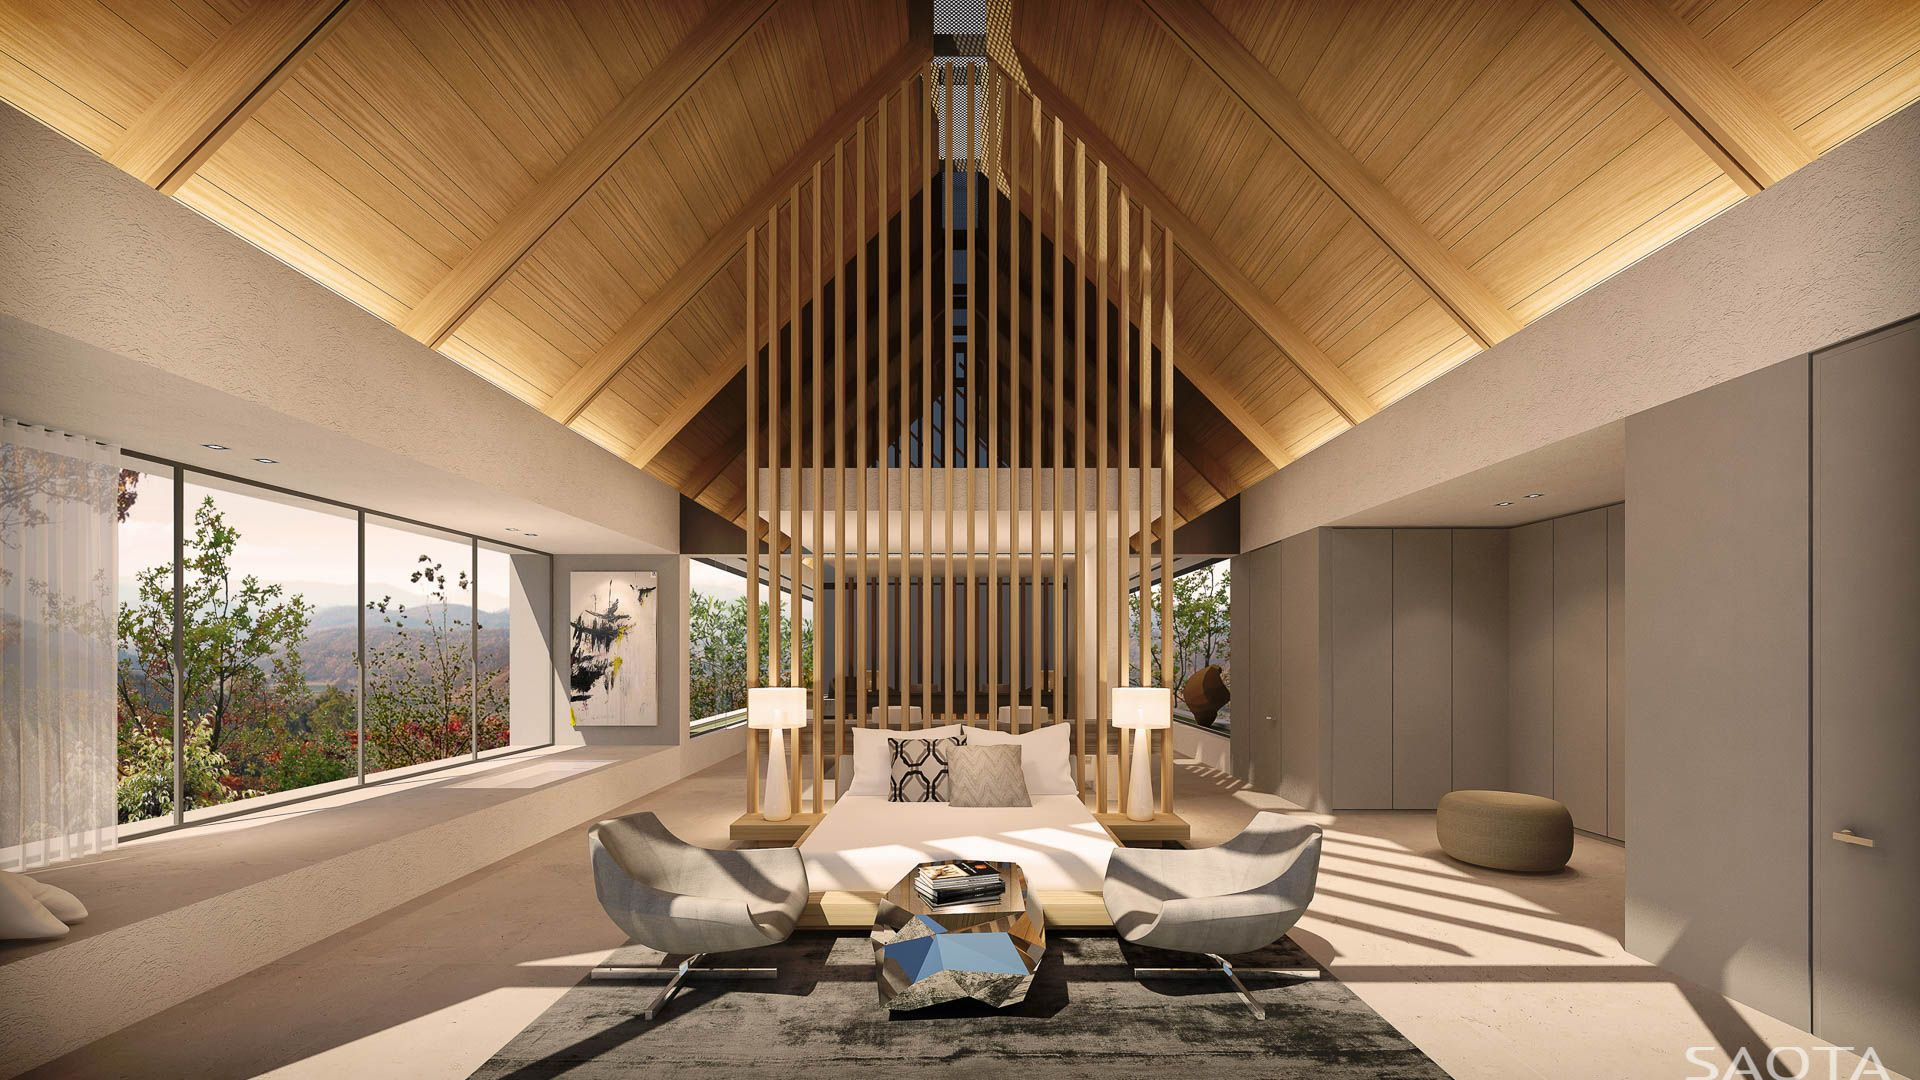 Lovely ZW WATERBERRY   SAOTA Architecture And Design · ZimbabweArchitectureProjects Interior ...